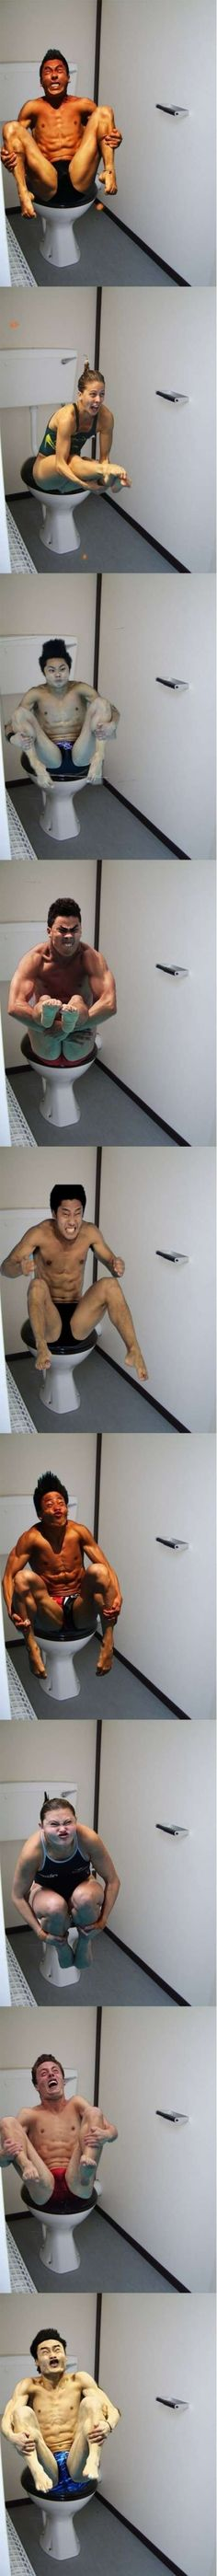 The Internet Loves Photoshop: Olympic Divers On The Toilet lol